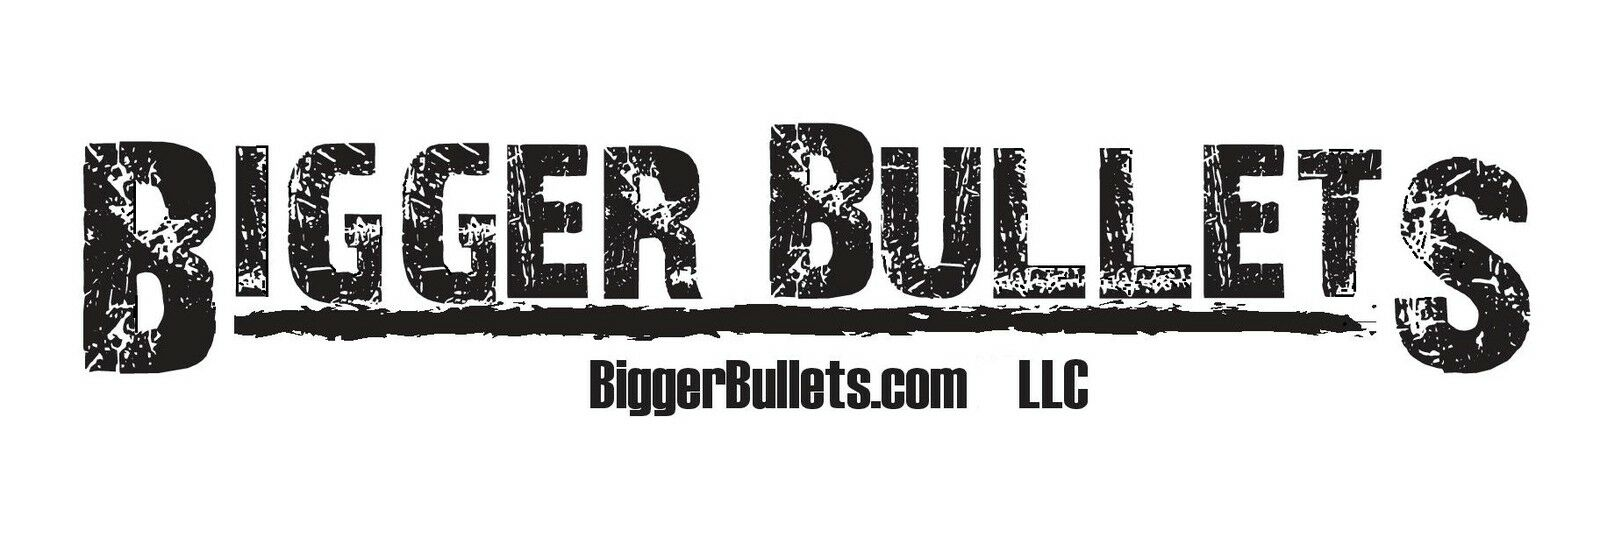 biggerbulletsllc